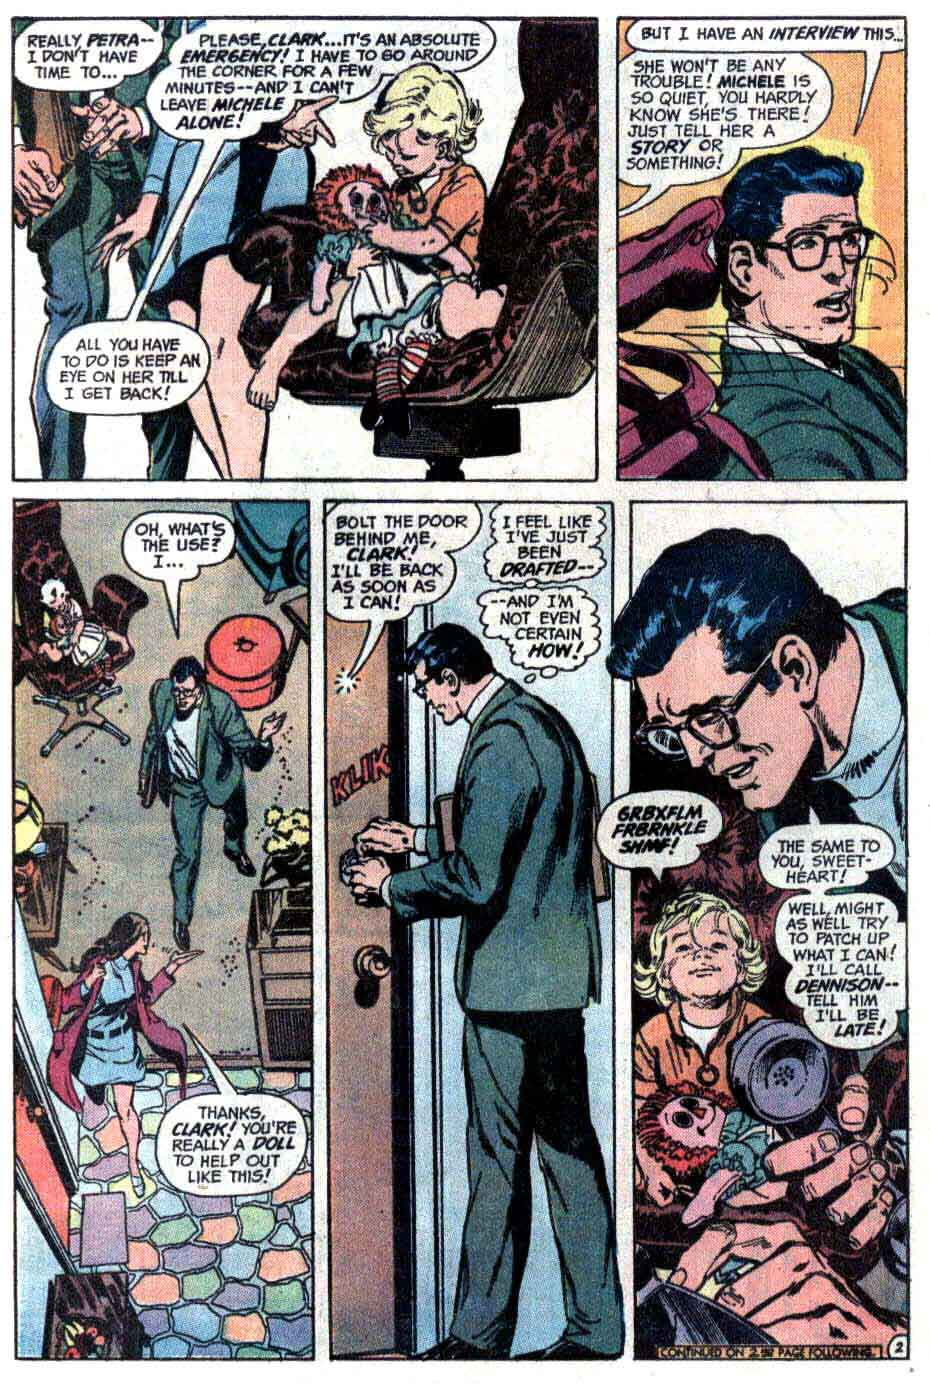 Superman v1 #254 dc comic book page art by Neal Adams